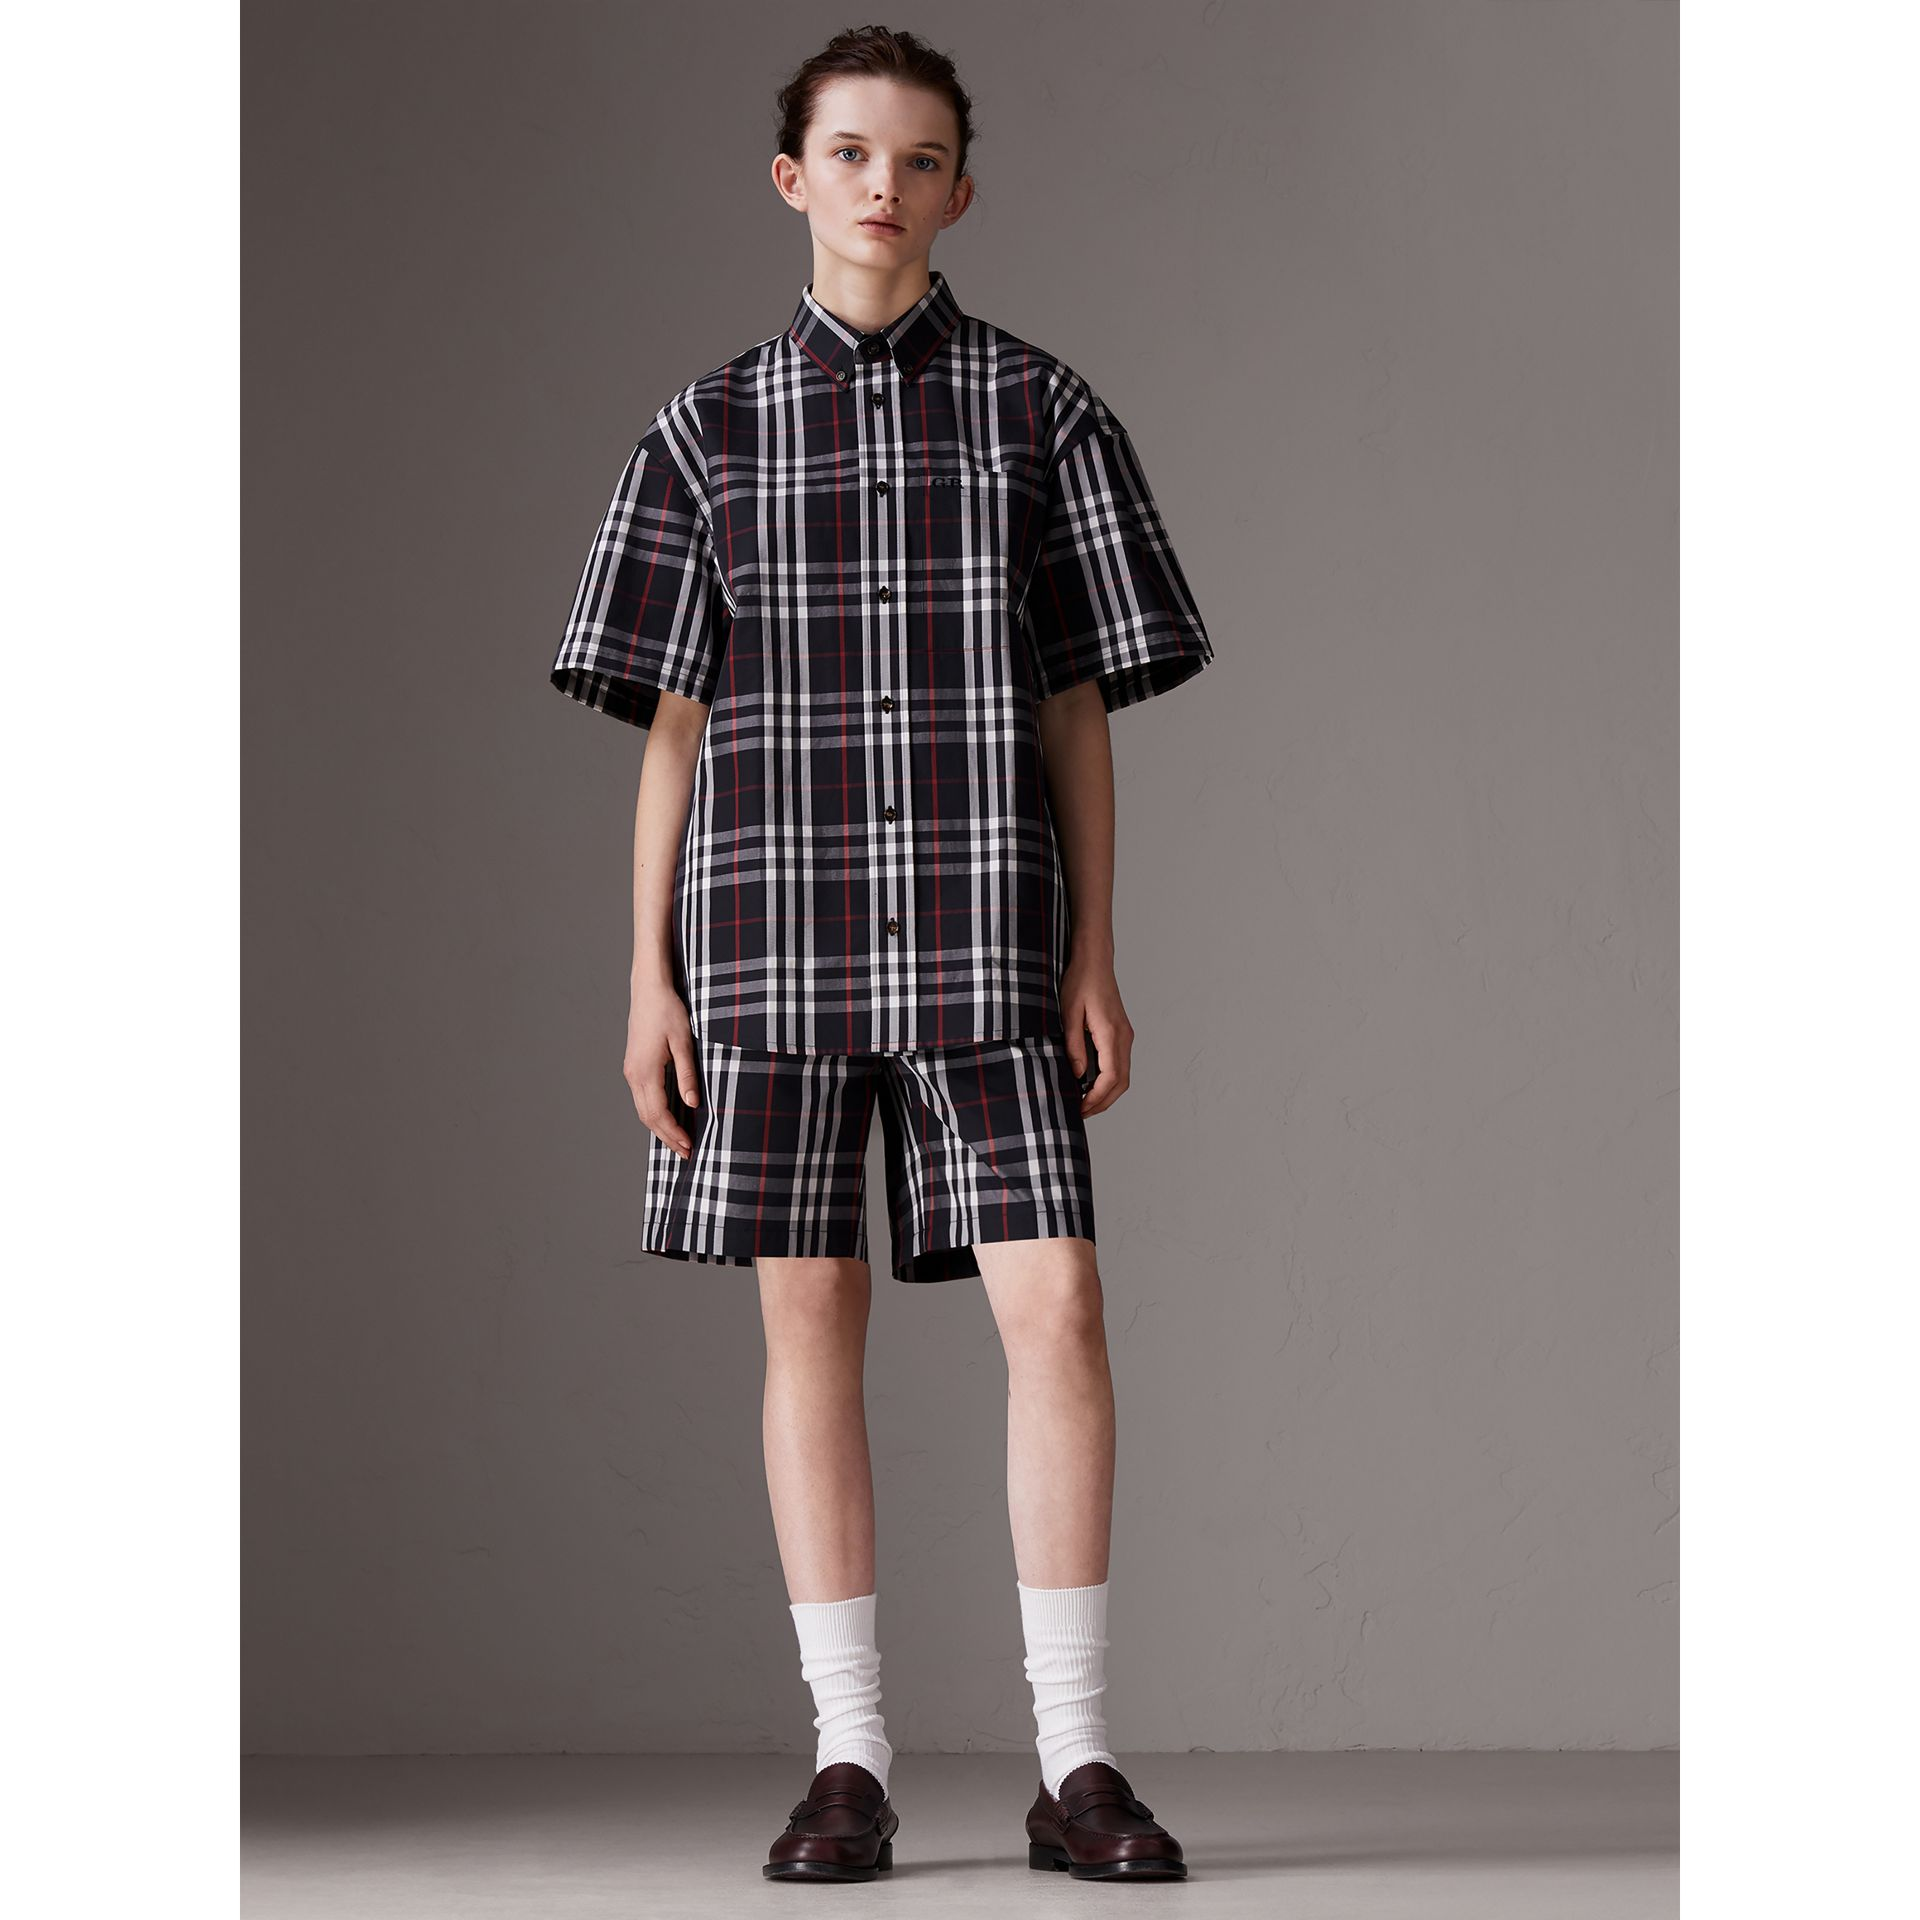 Gosha x Burberry Short-sleeve Check Shirt in Navy | Burberry Canada - gallery image 3